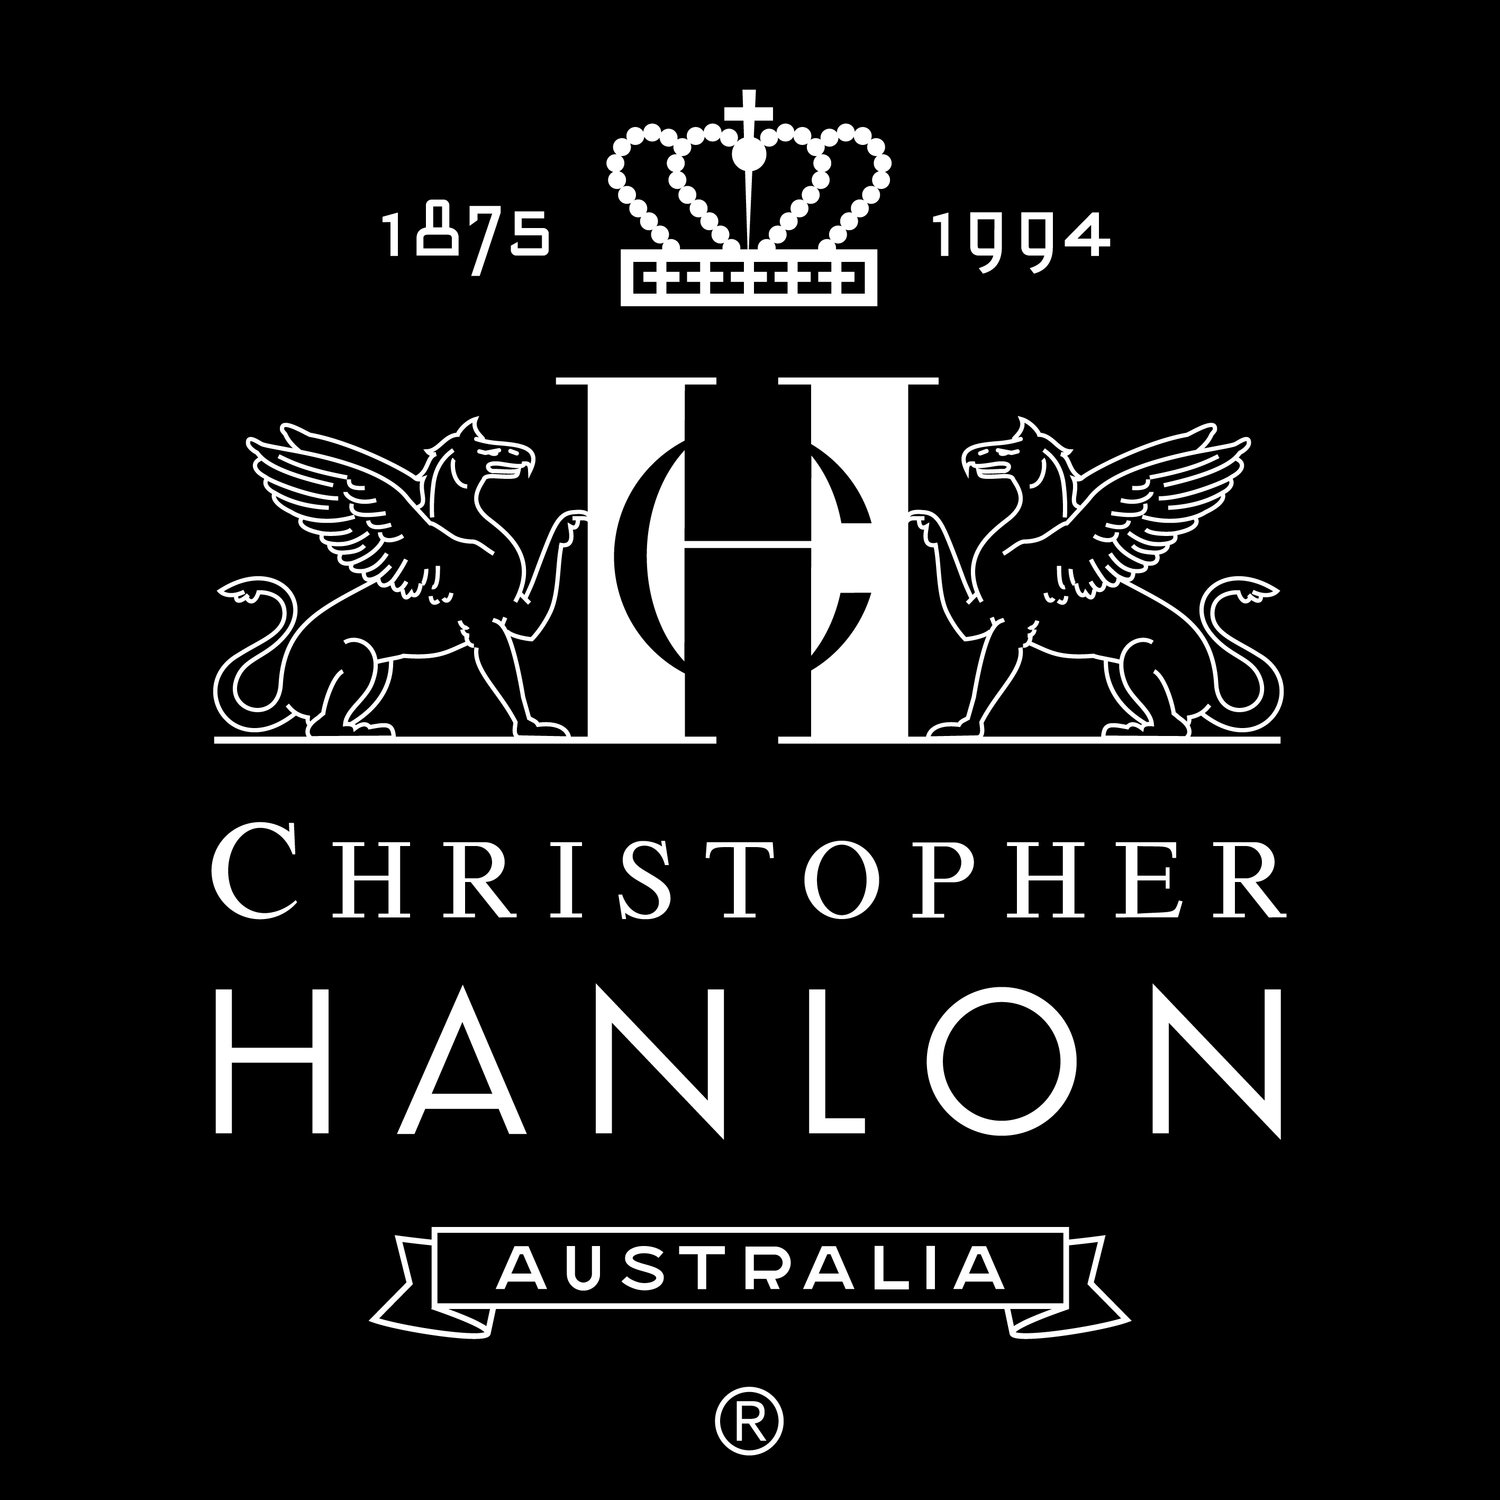 CHRISTOPHER HANLON®